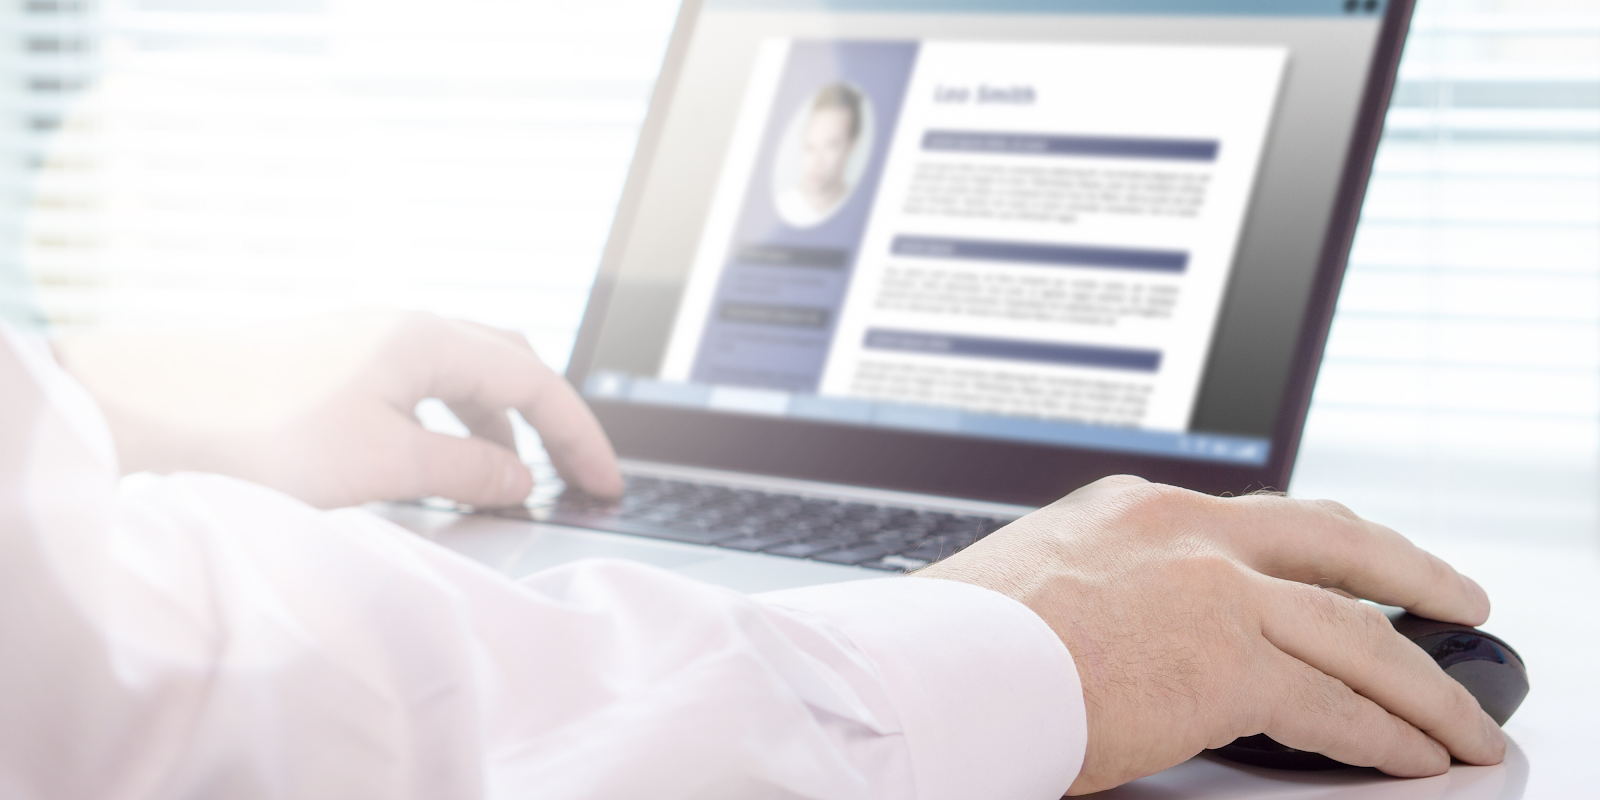 Should You Add Your Ability to Work Remotely to Your Technology-Based Resume?